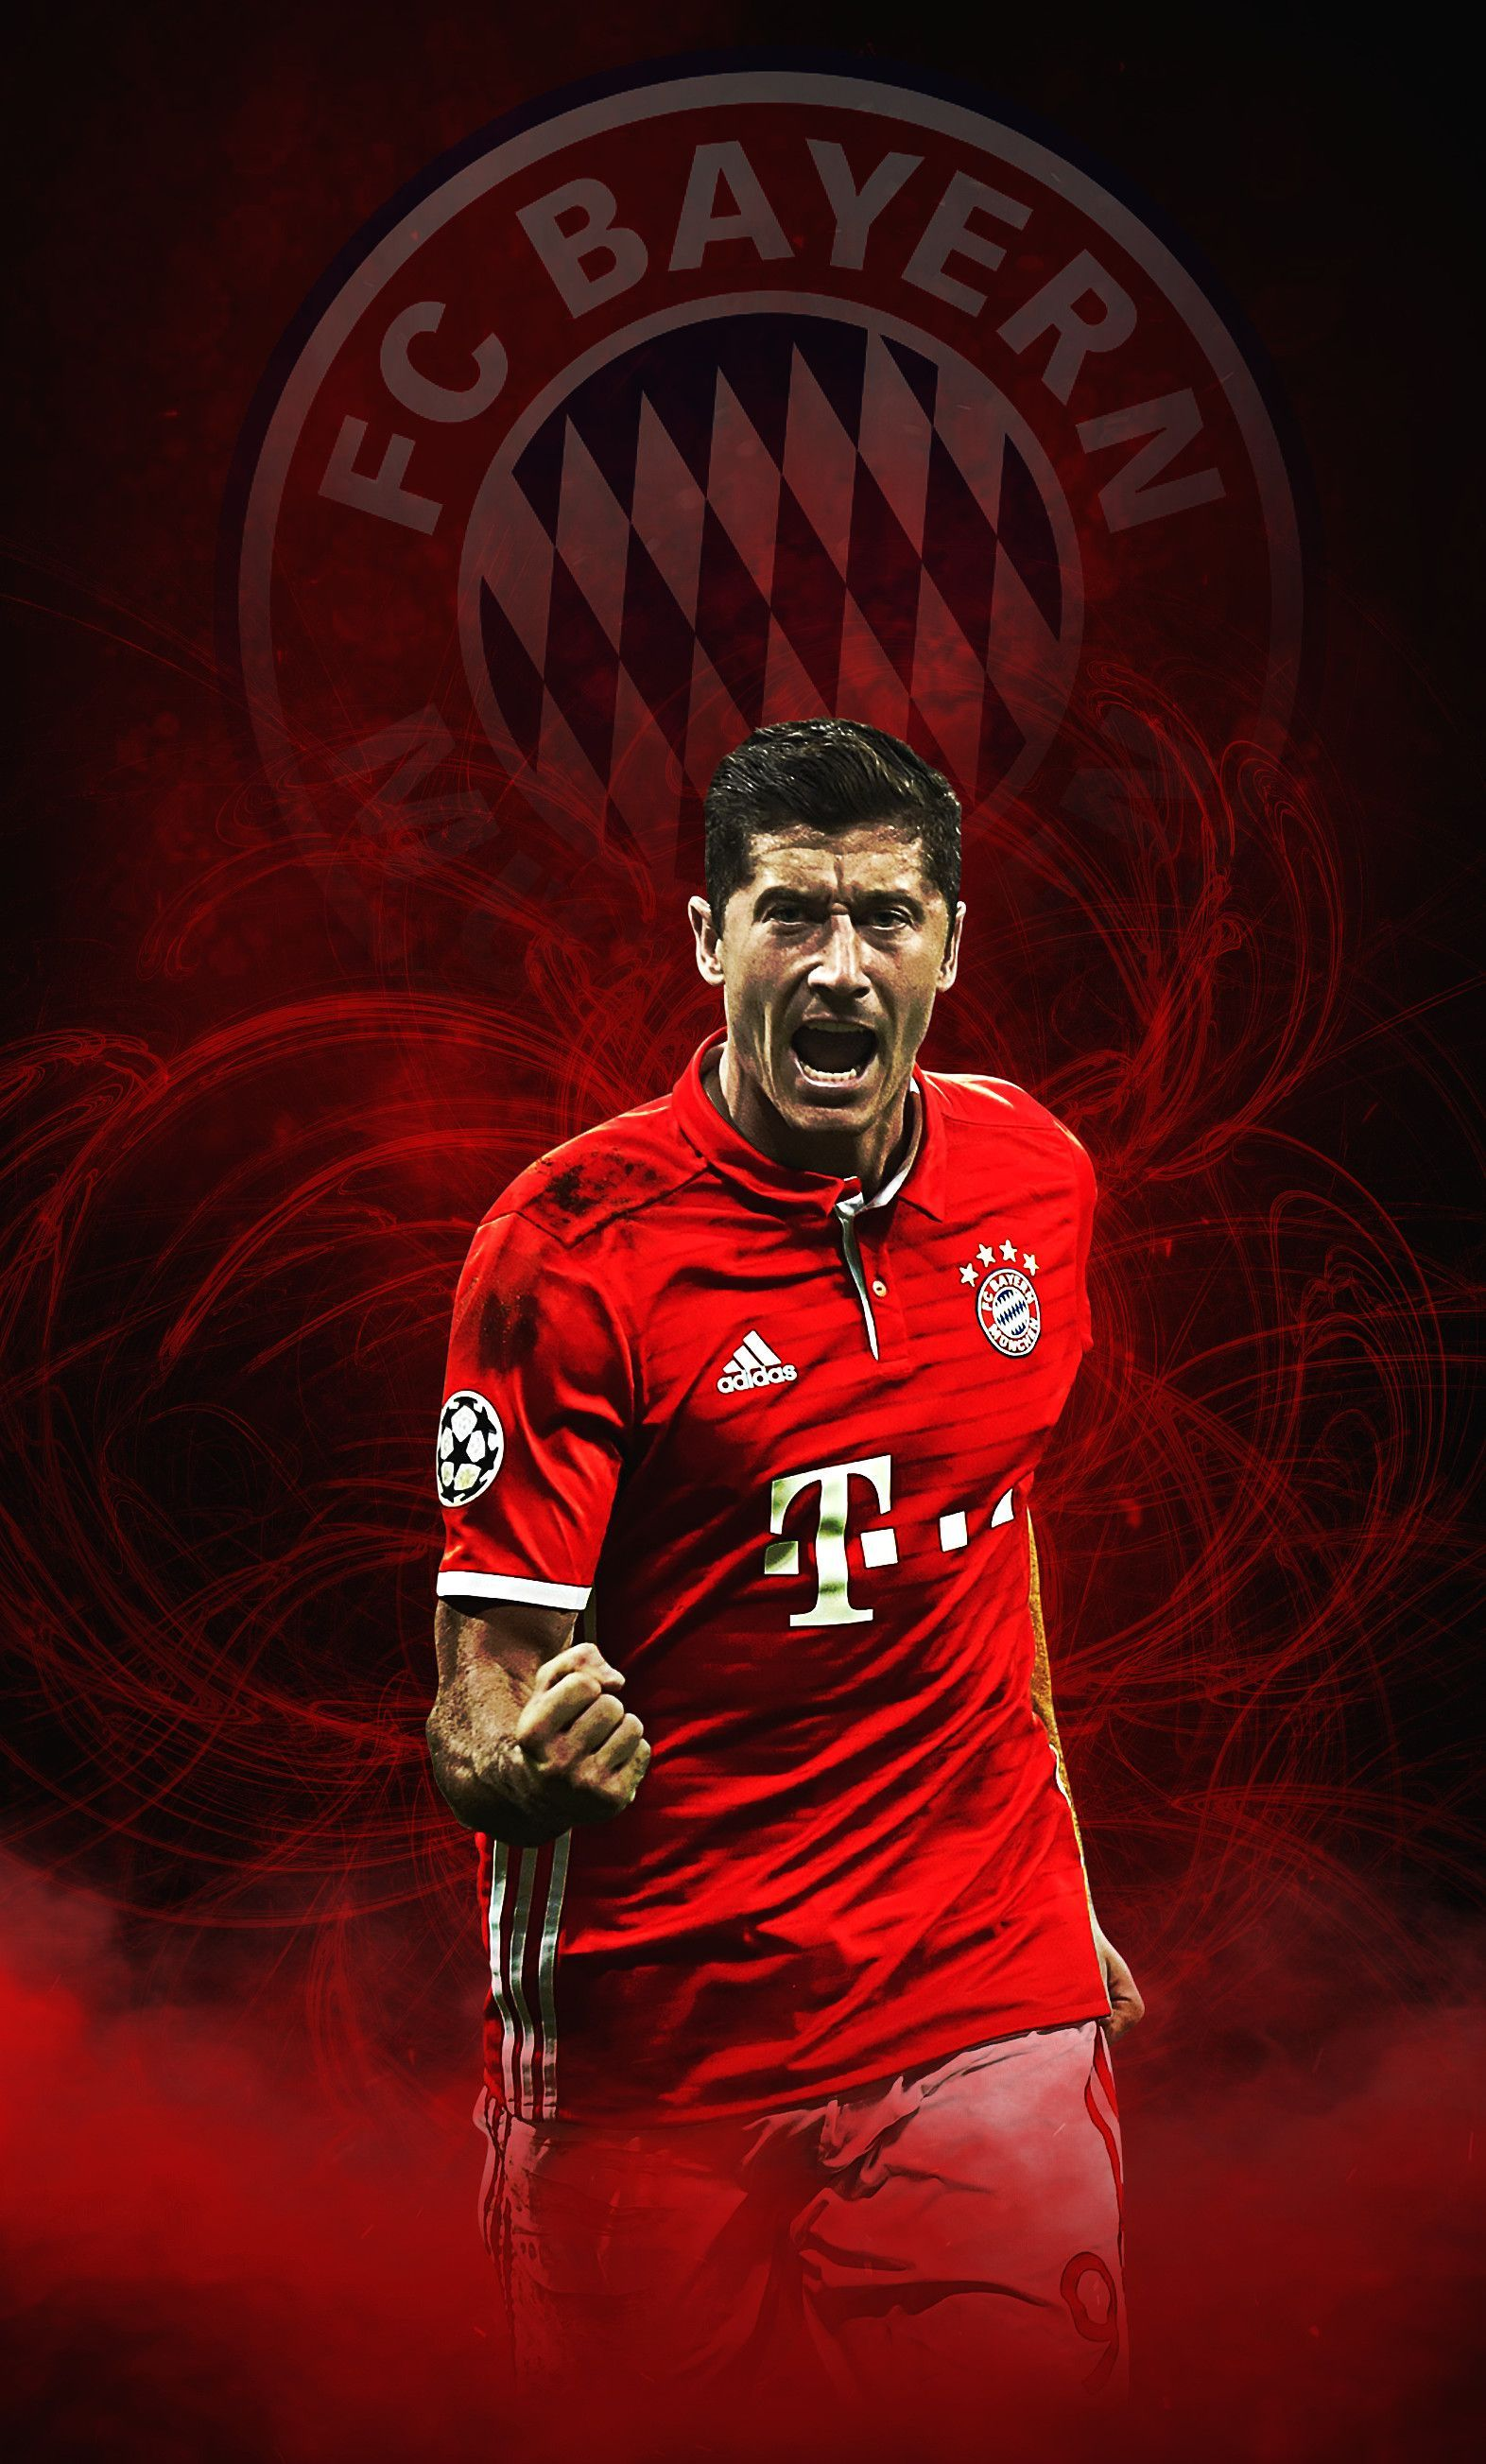 Robert Lewandowski Wallpaper 2020 Hd Football